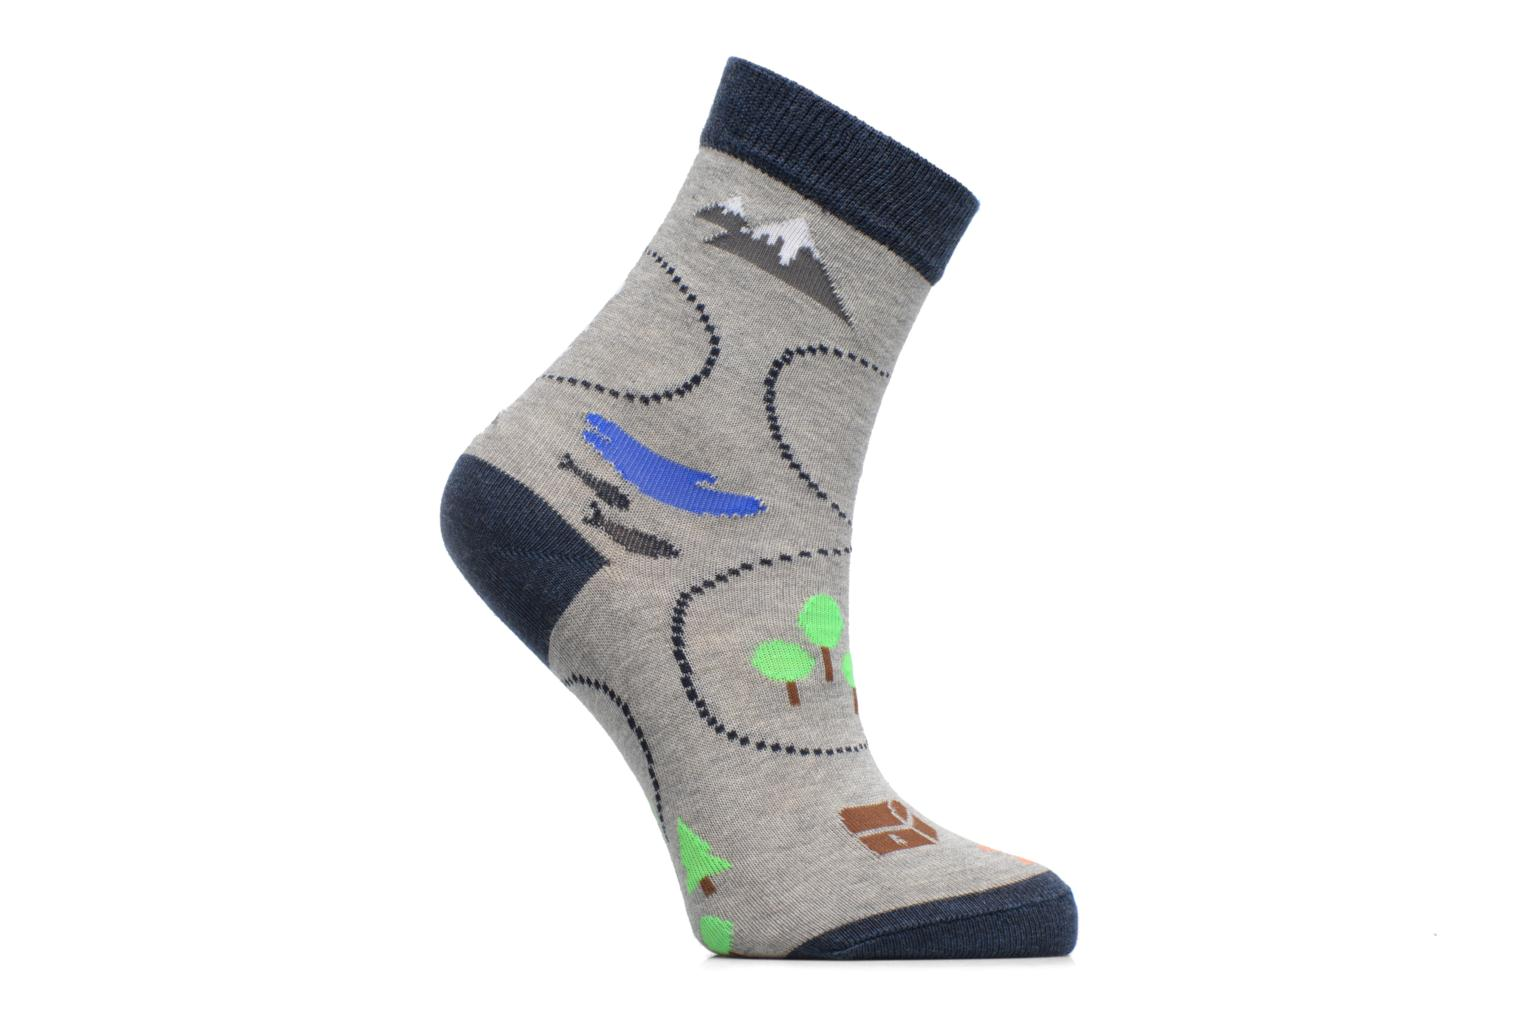 Chaussettes Treasure Map 3400 Light grey